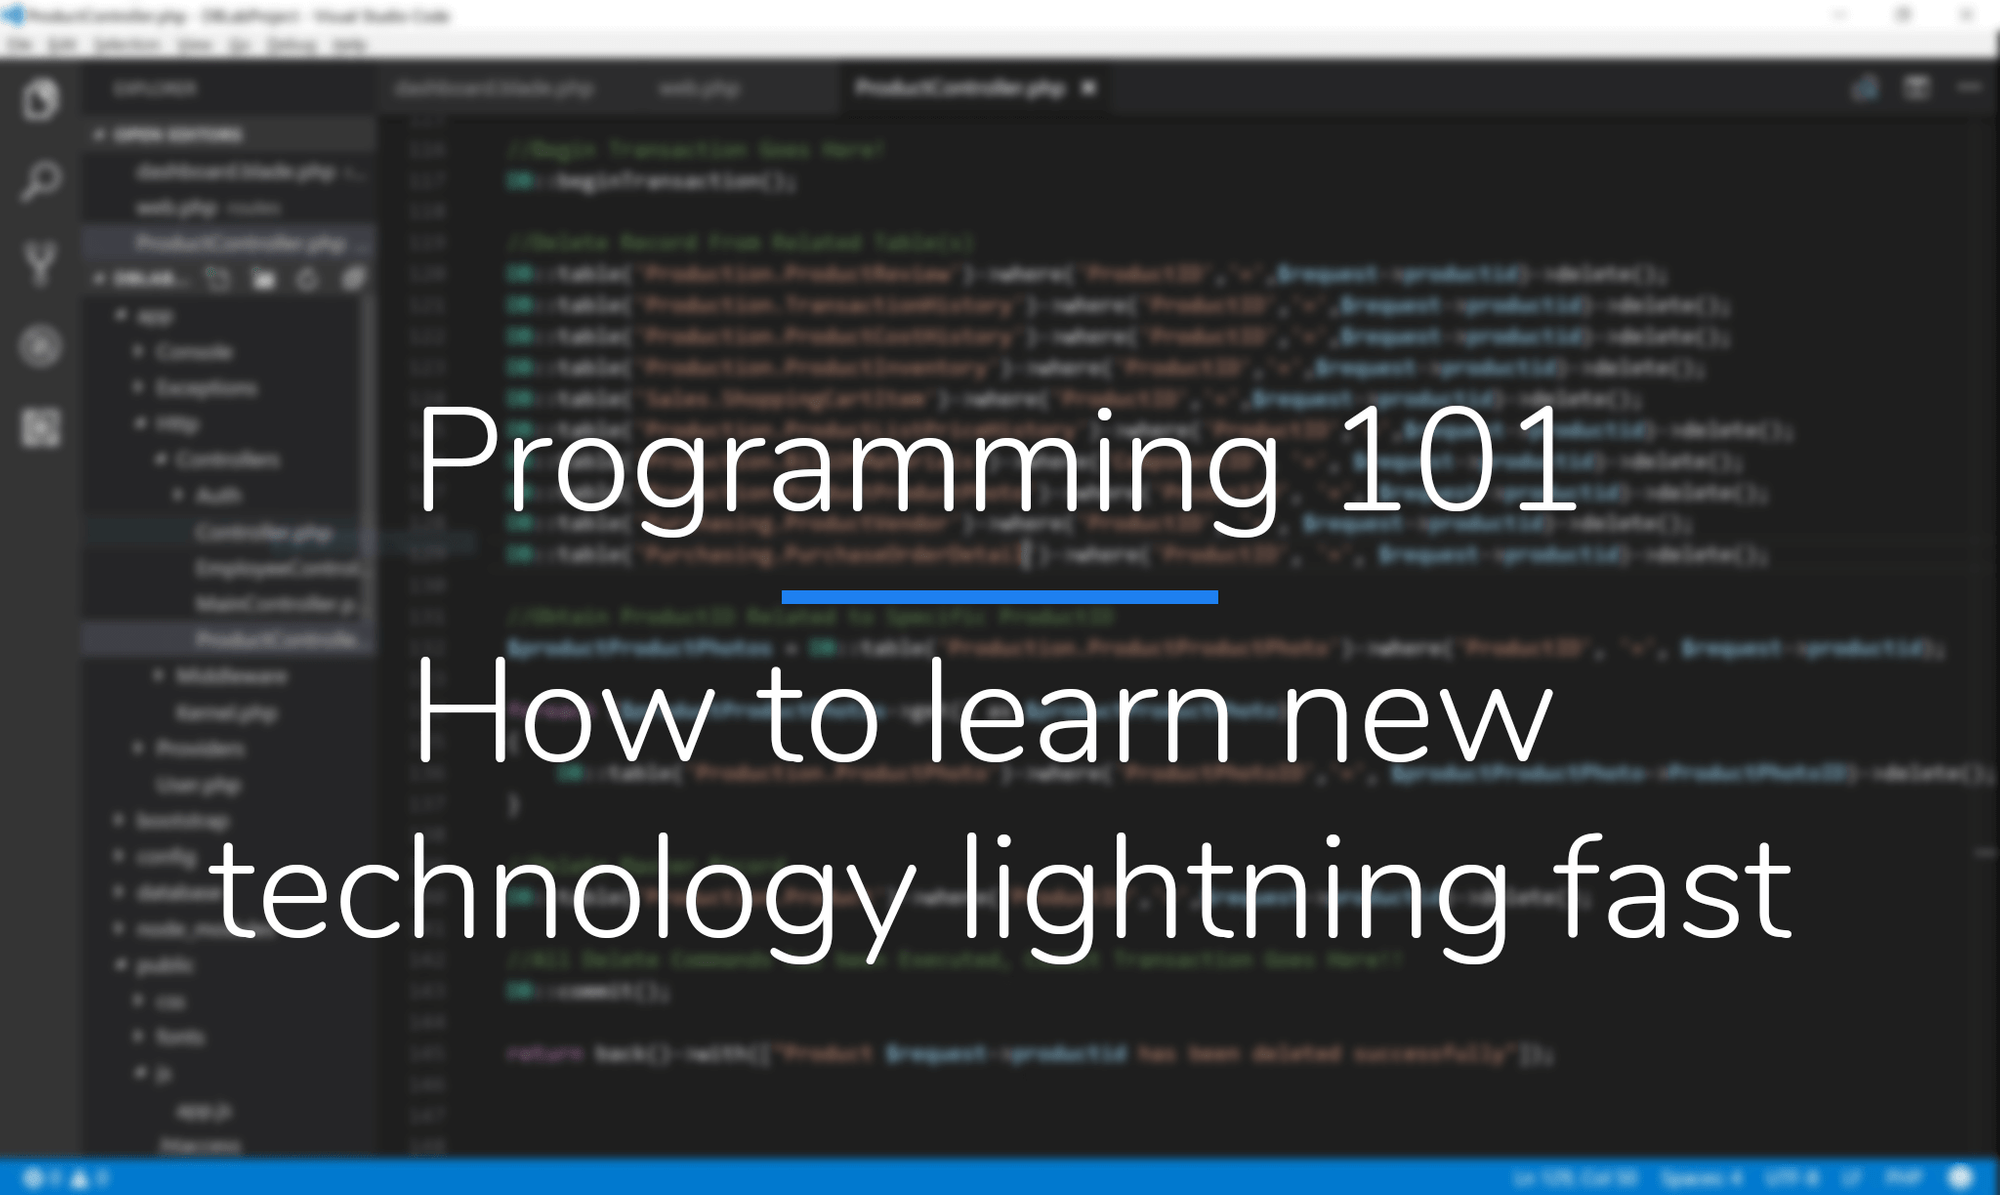 Programming 101 - How to learn new technology lightning fast